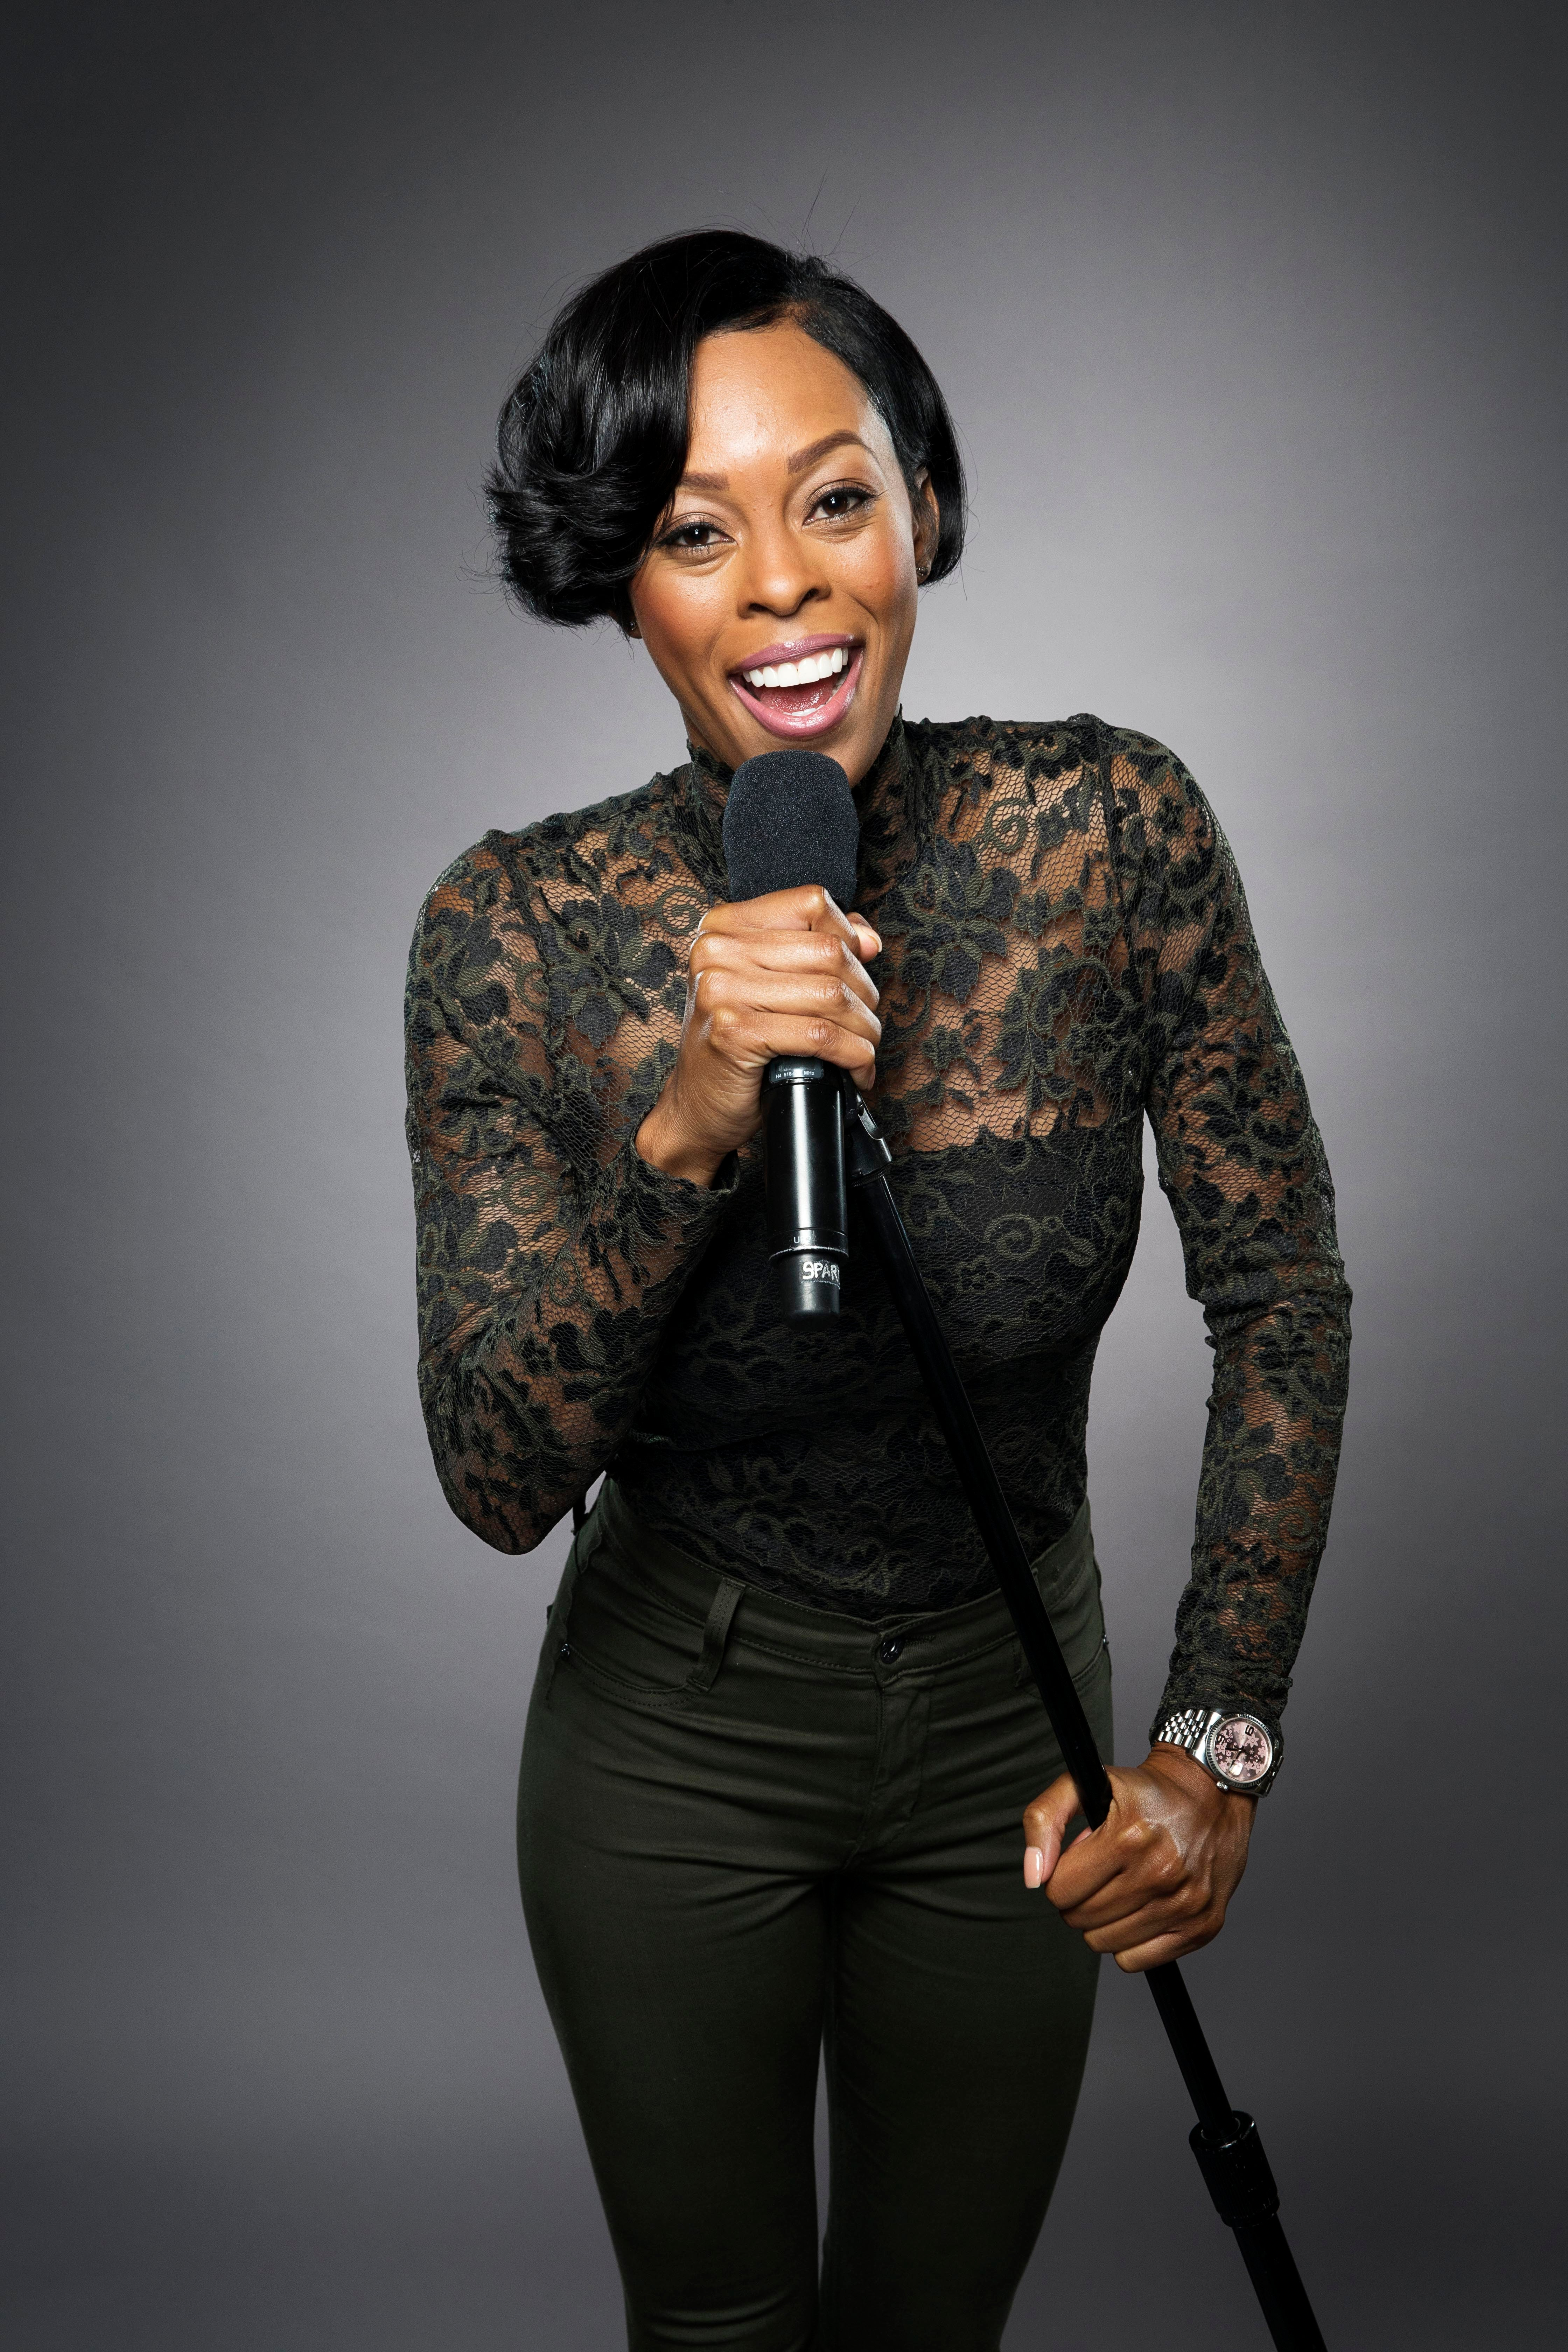 5 Things To Know About All Def Comedy's Daphnique Springs